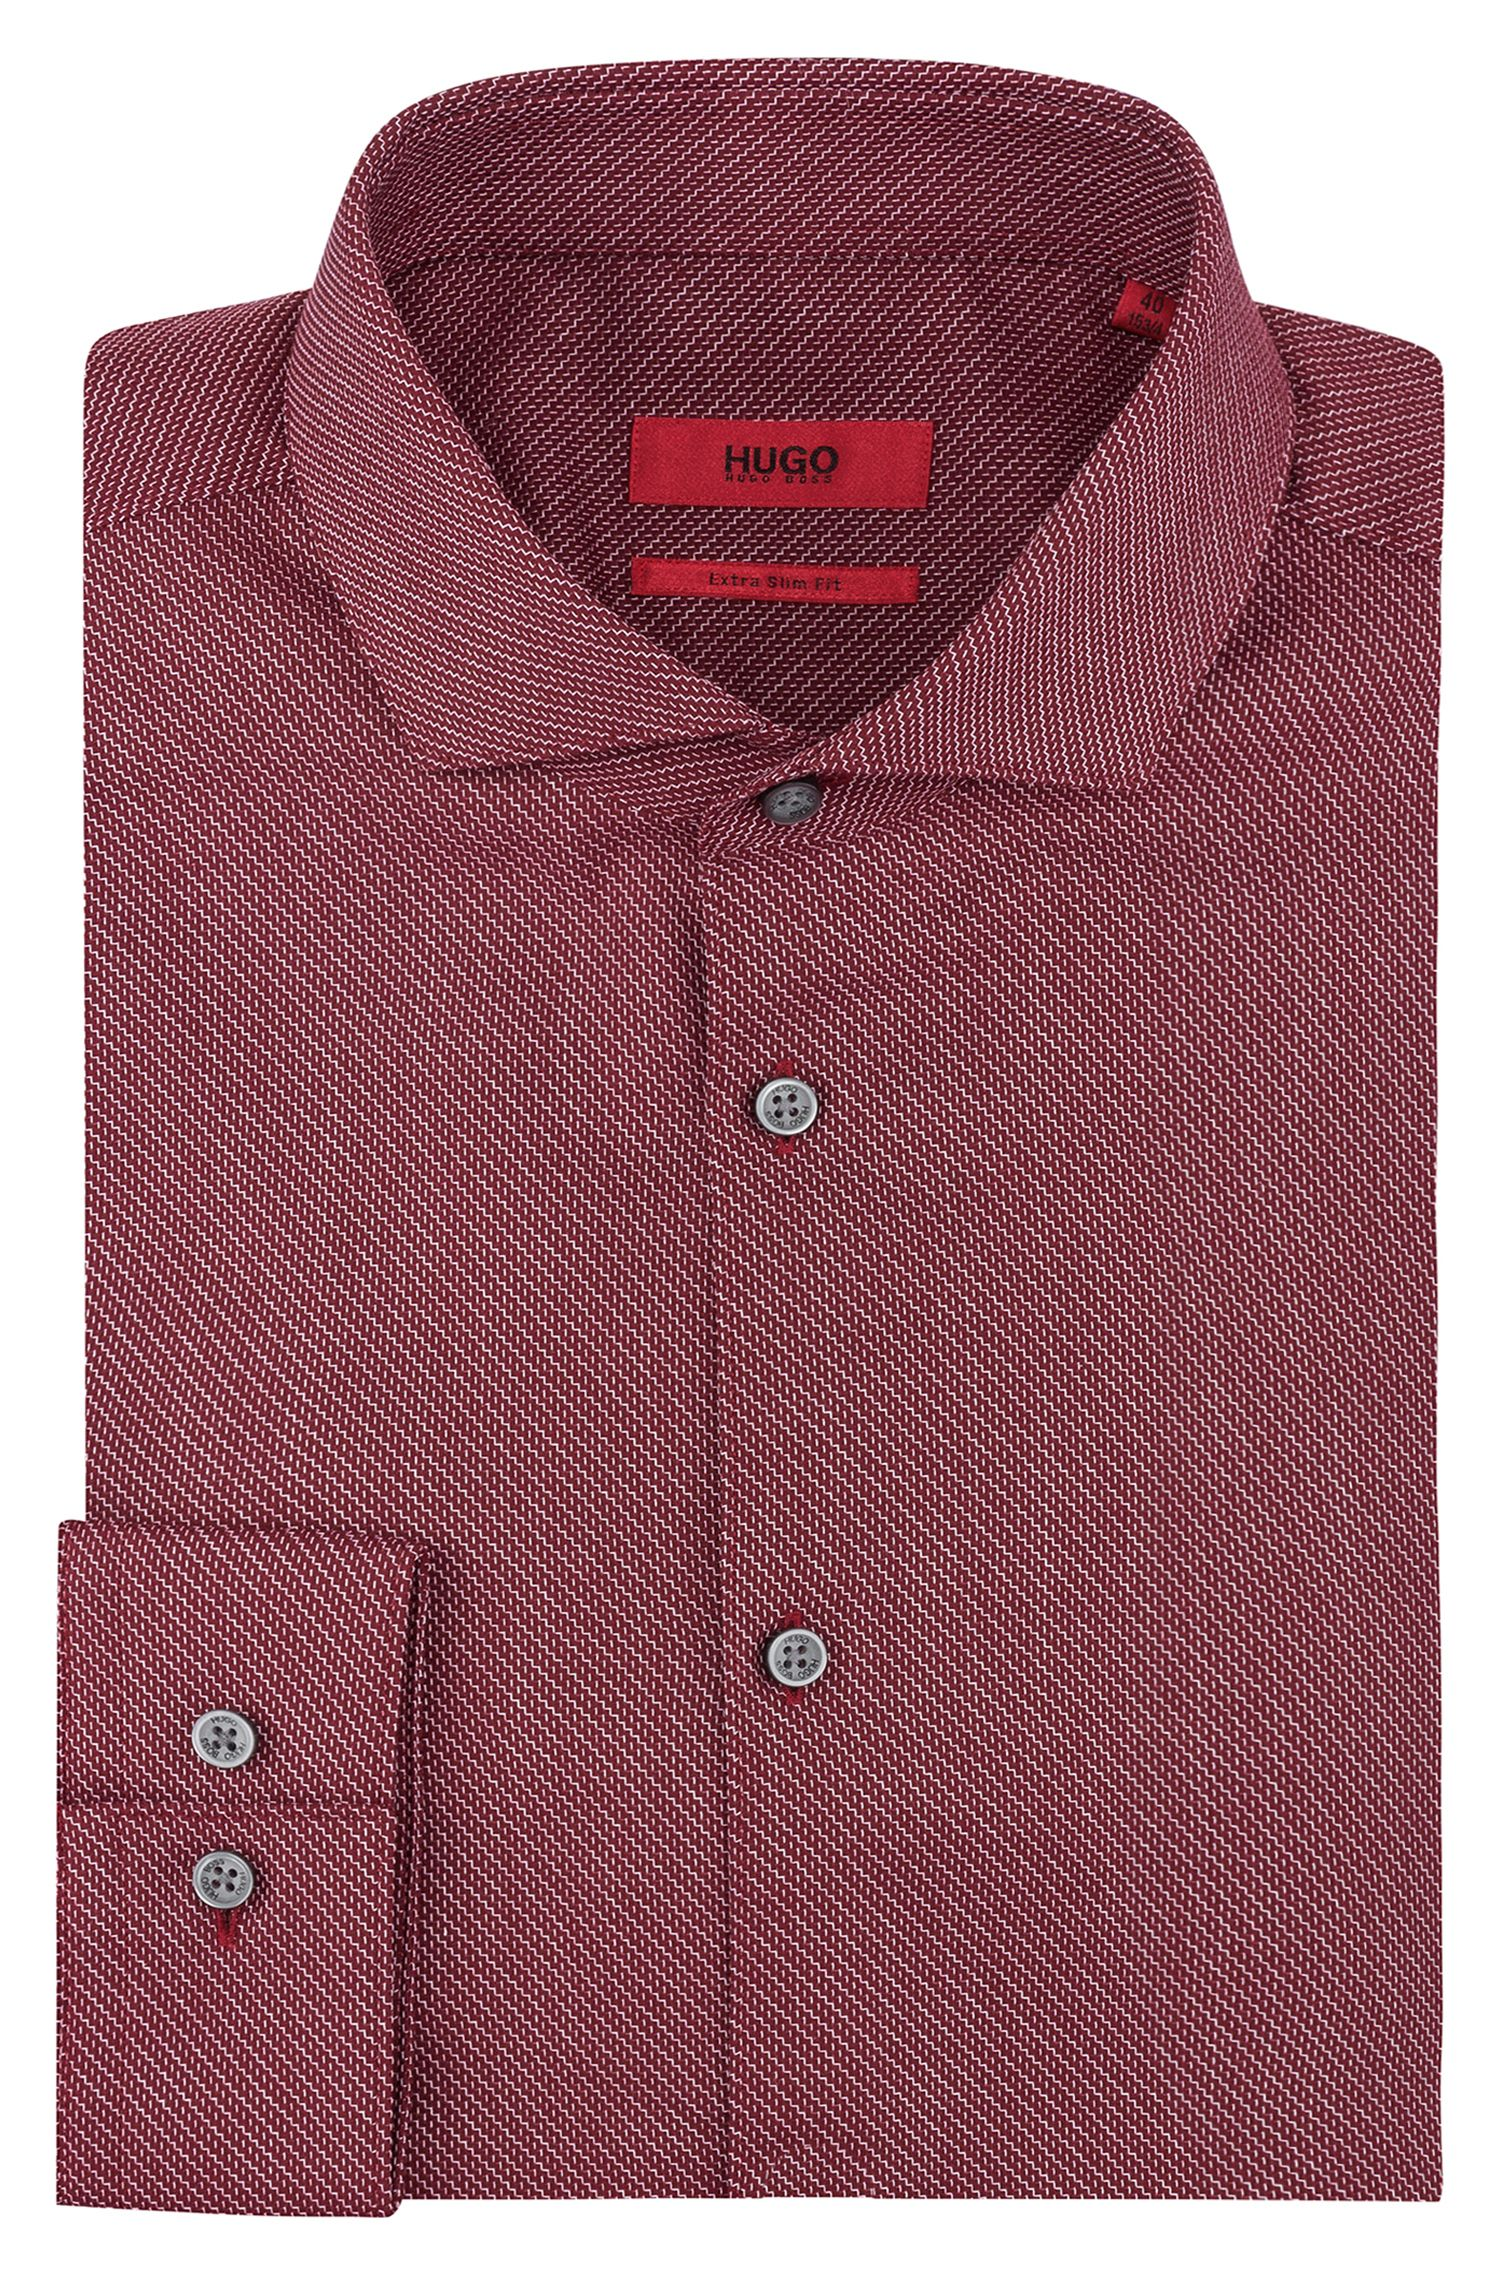 Extra-slim-fit cotton canvas shirt with zigzag diagonal stripes